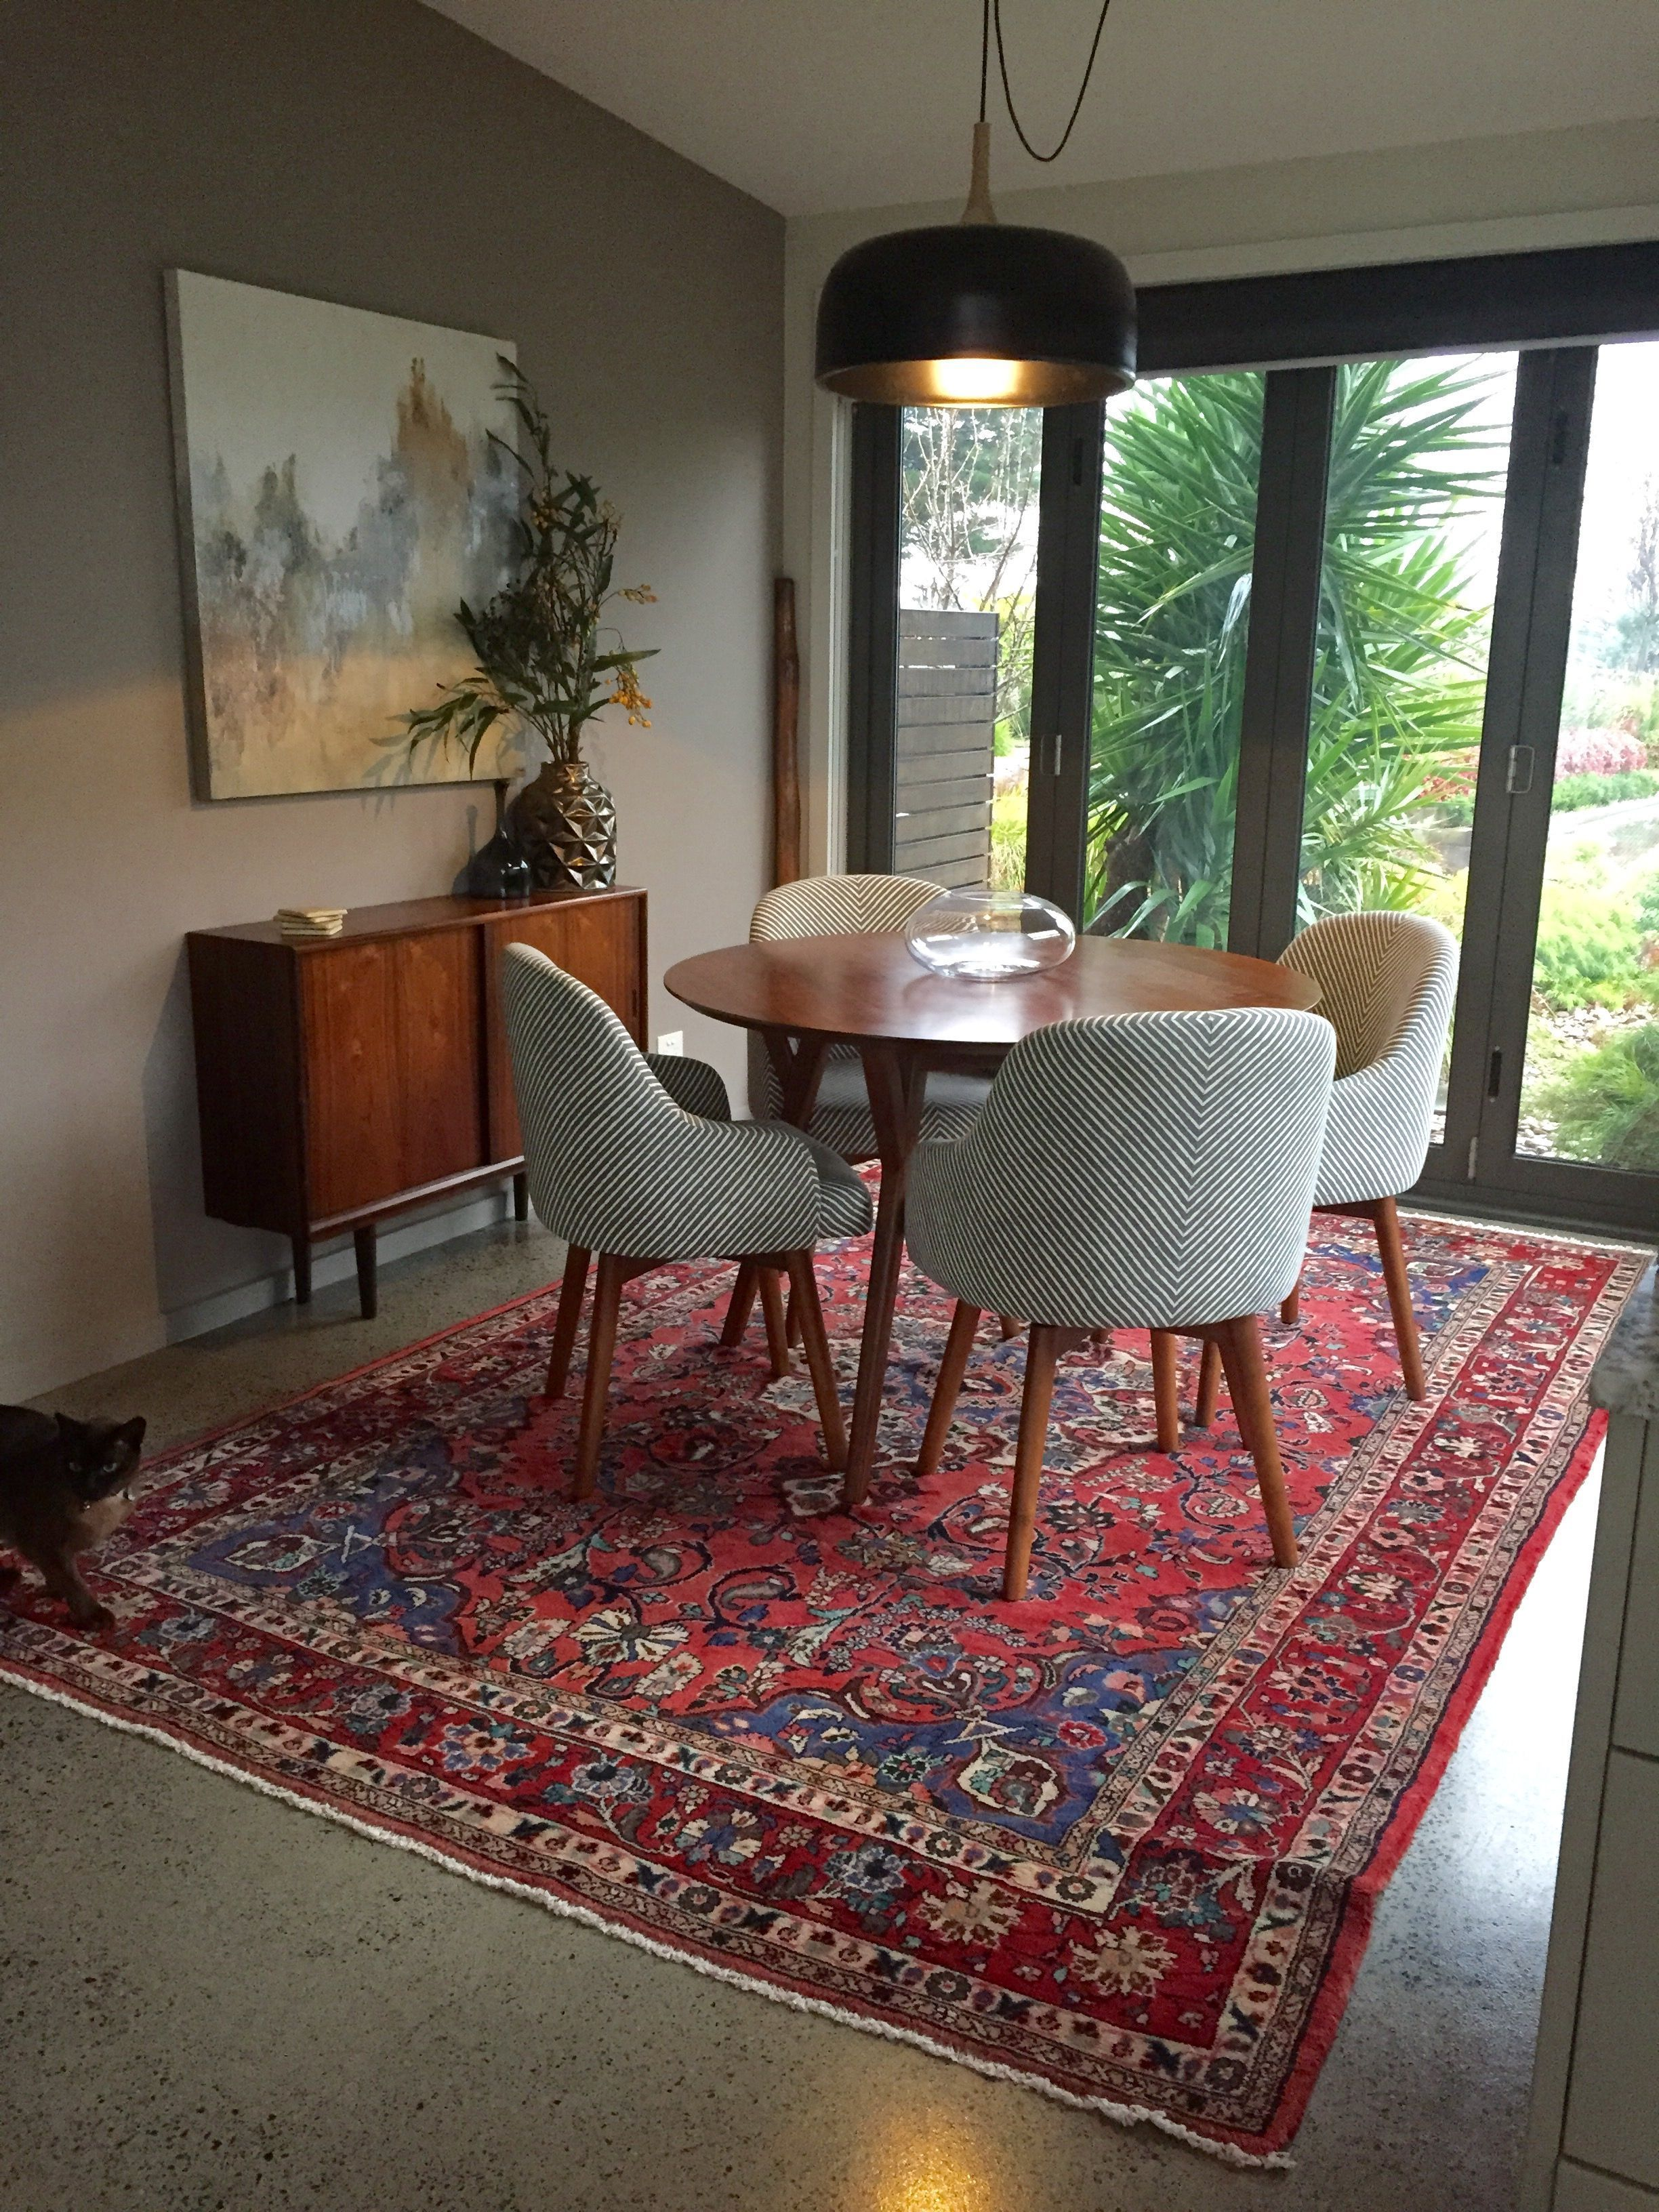 Bg Love This Combo Of Traditional Rug And Modern Chairs Wrongs